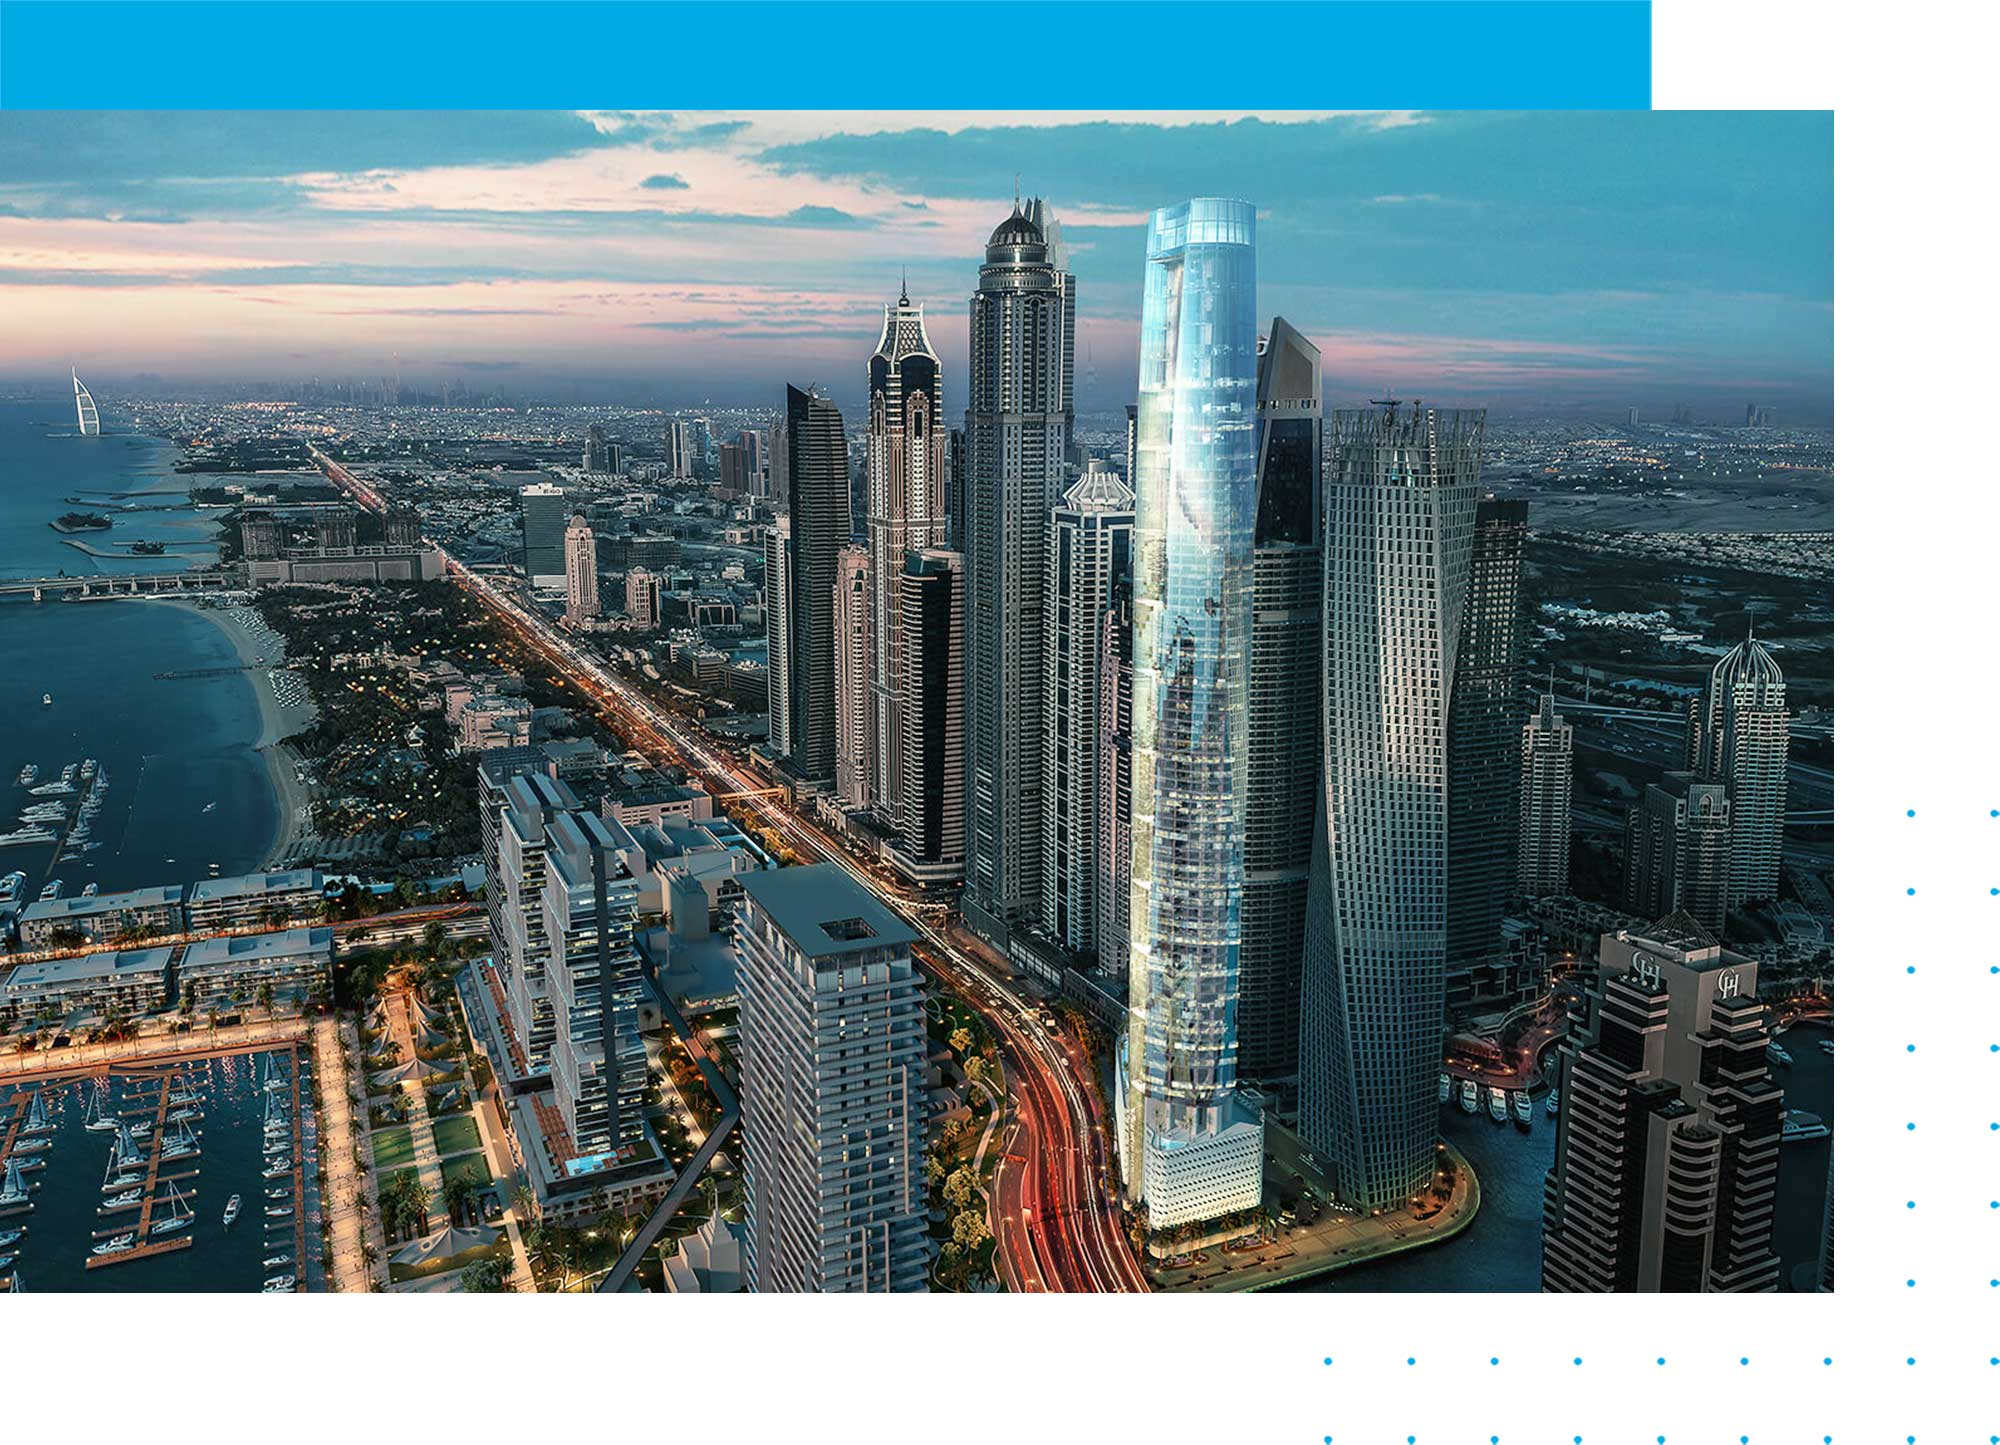 Ciel Tower in Dubai Marina: Studio Apartments for Sale in The World's Tallest Hotel